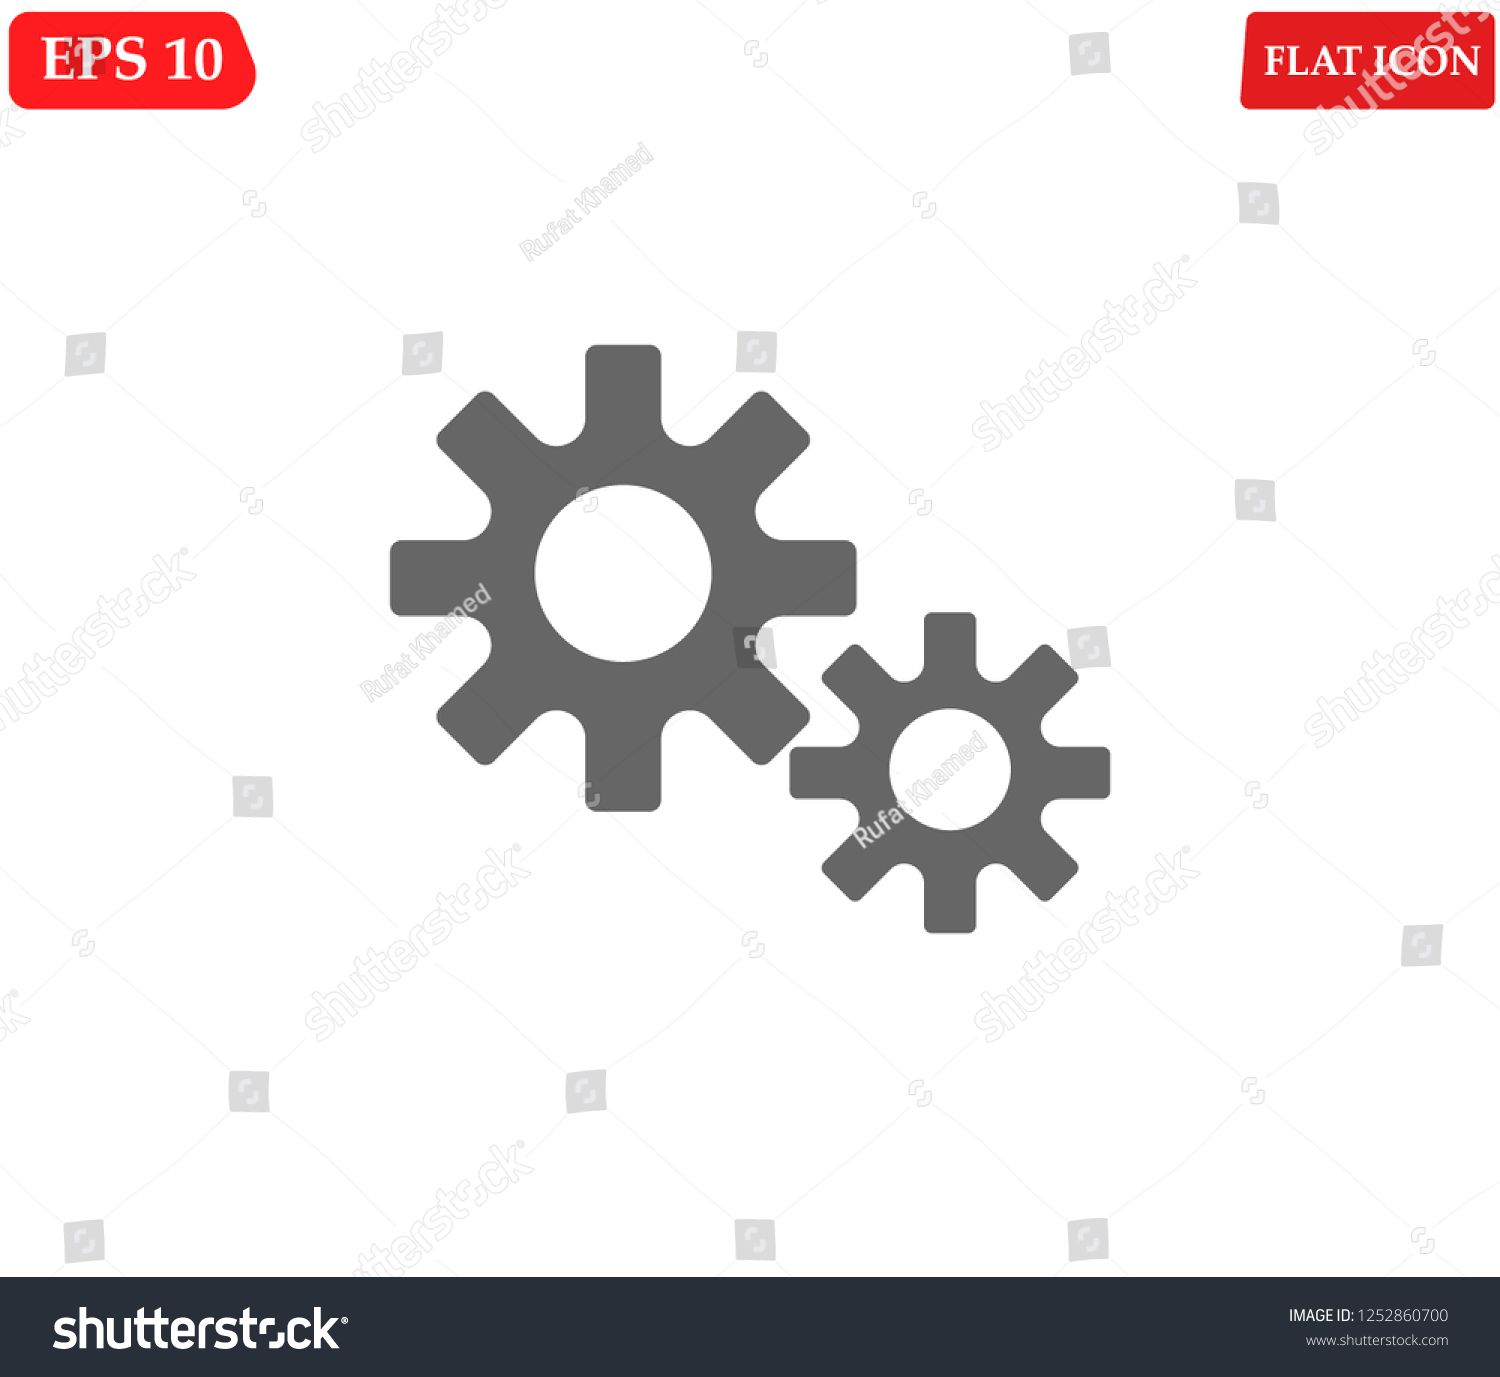 Settings icon vector  Gear icon symbol icon#Settings#vector#symbol